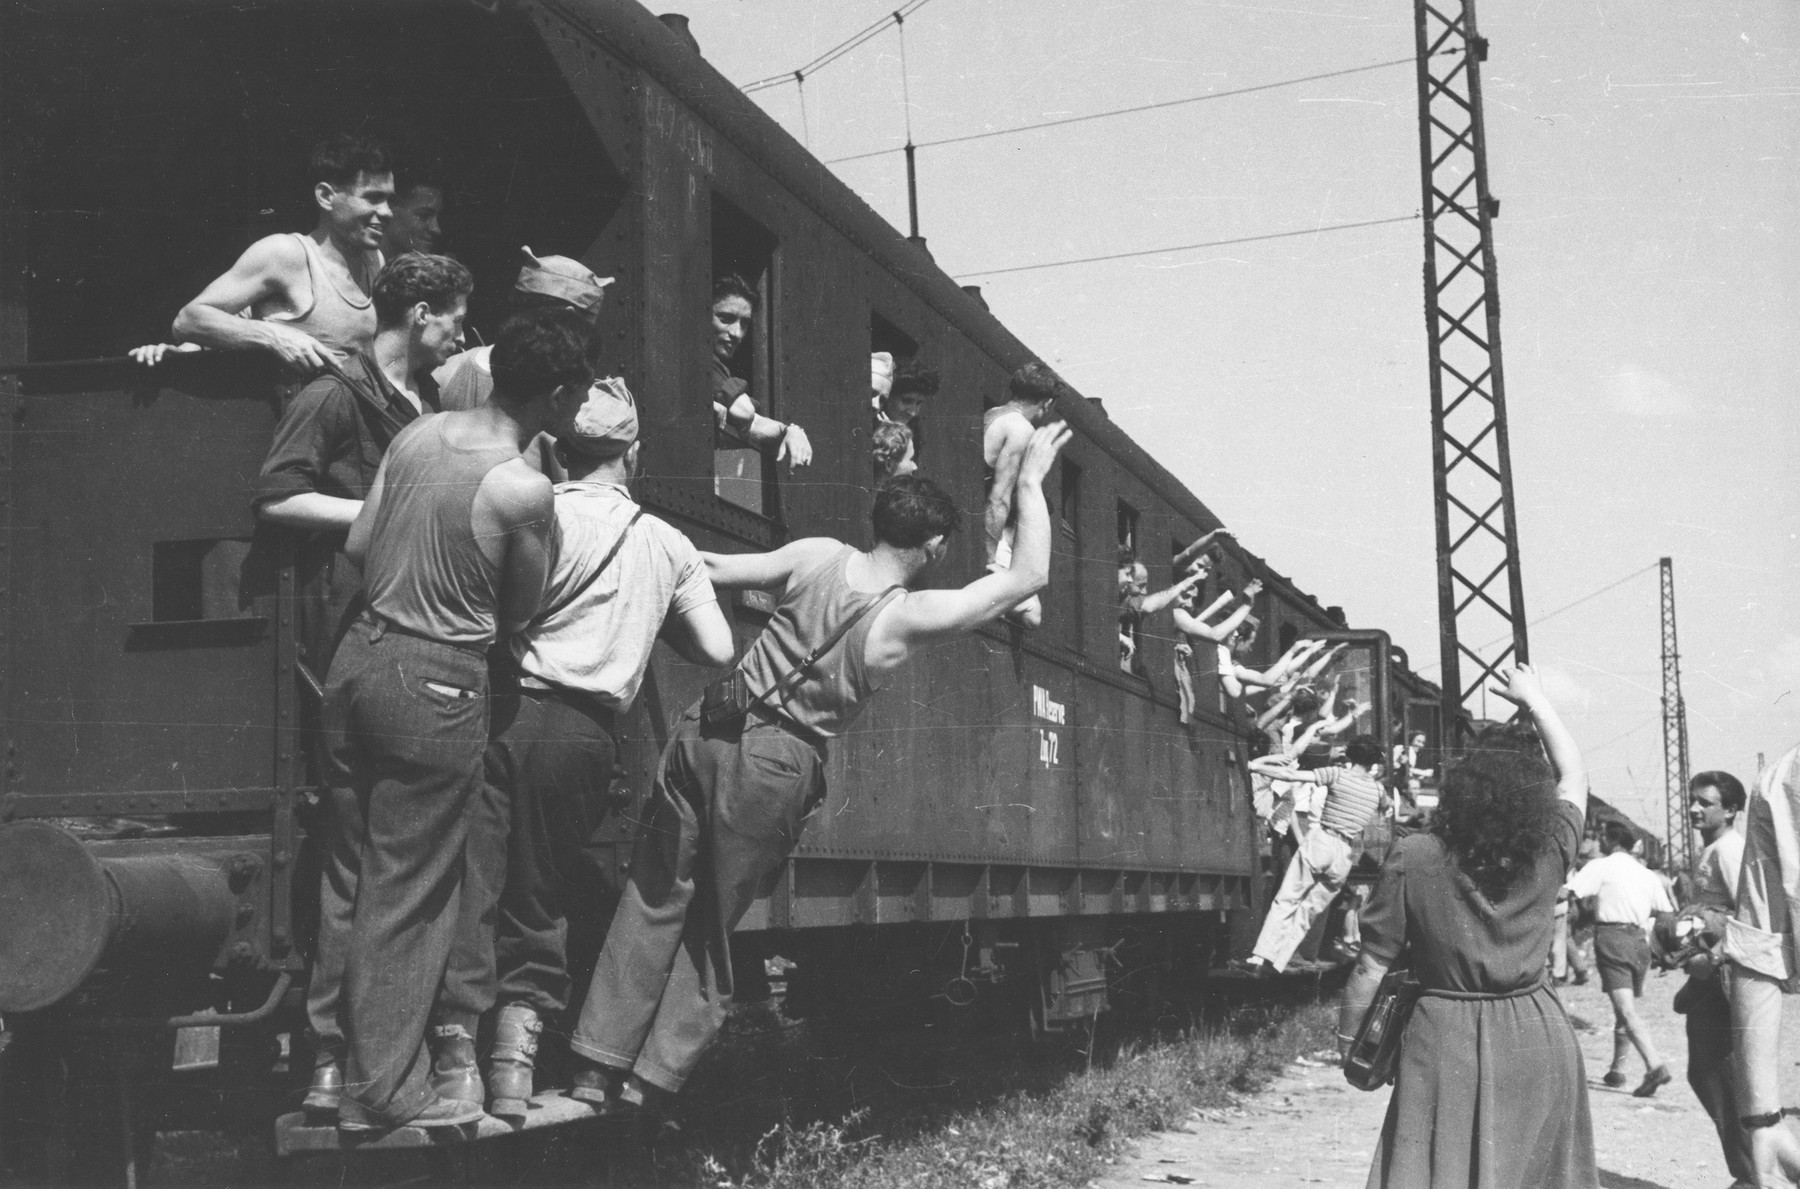 Jewish DPs on board a train wave good-bye to friends and relatives as they leave Germany for France en route to Israel.